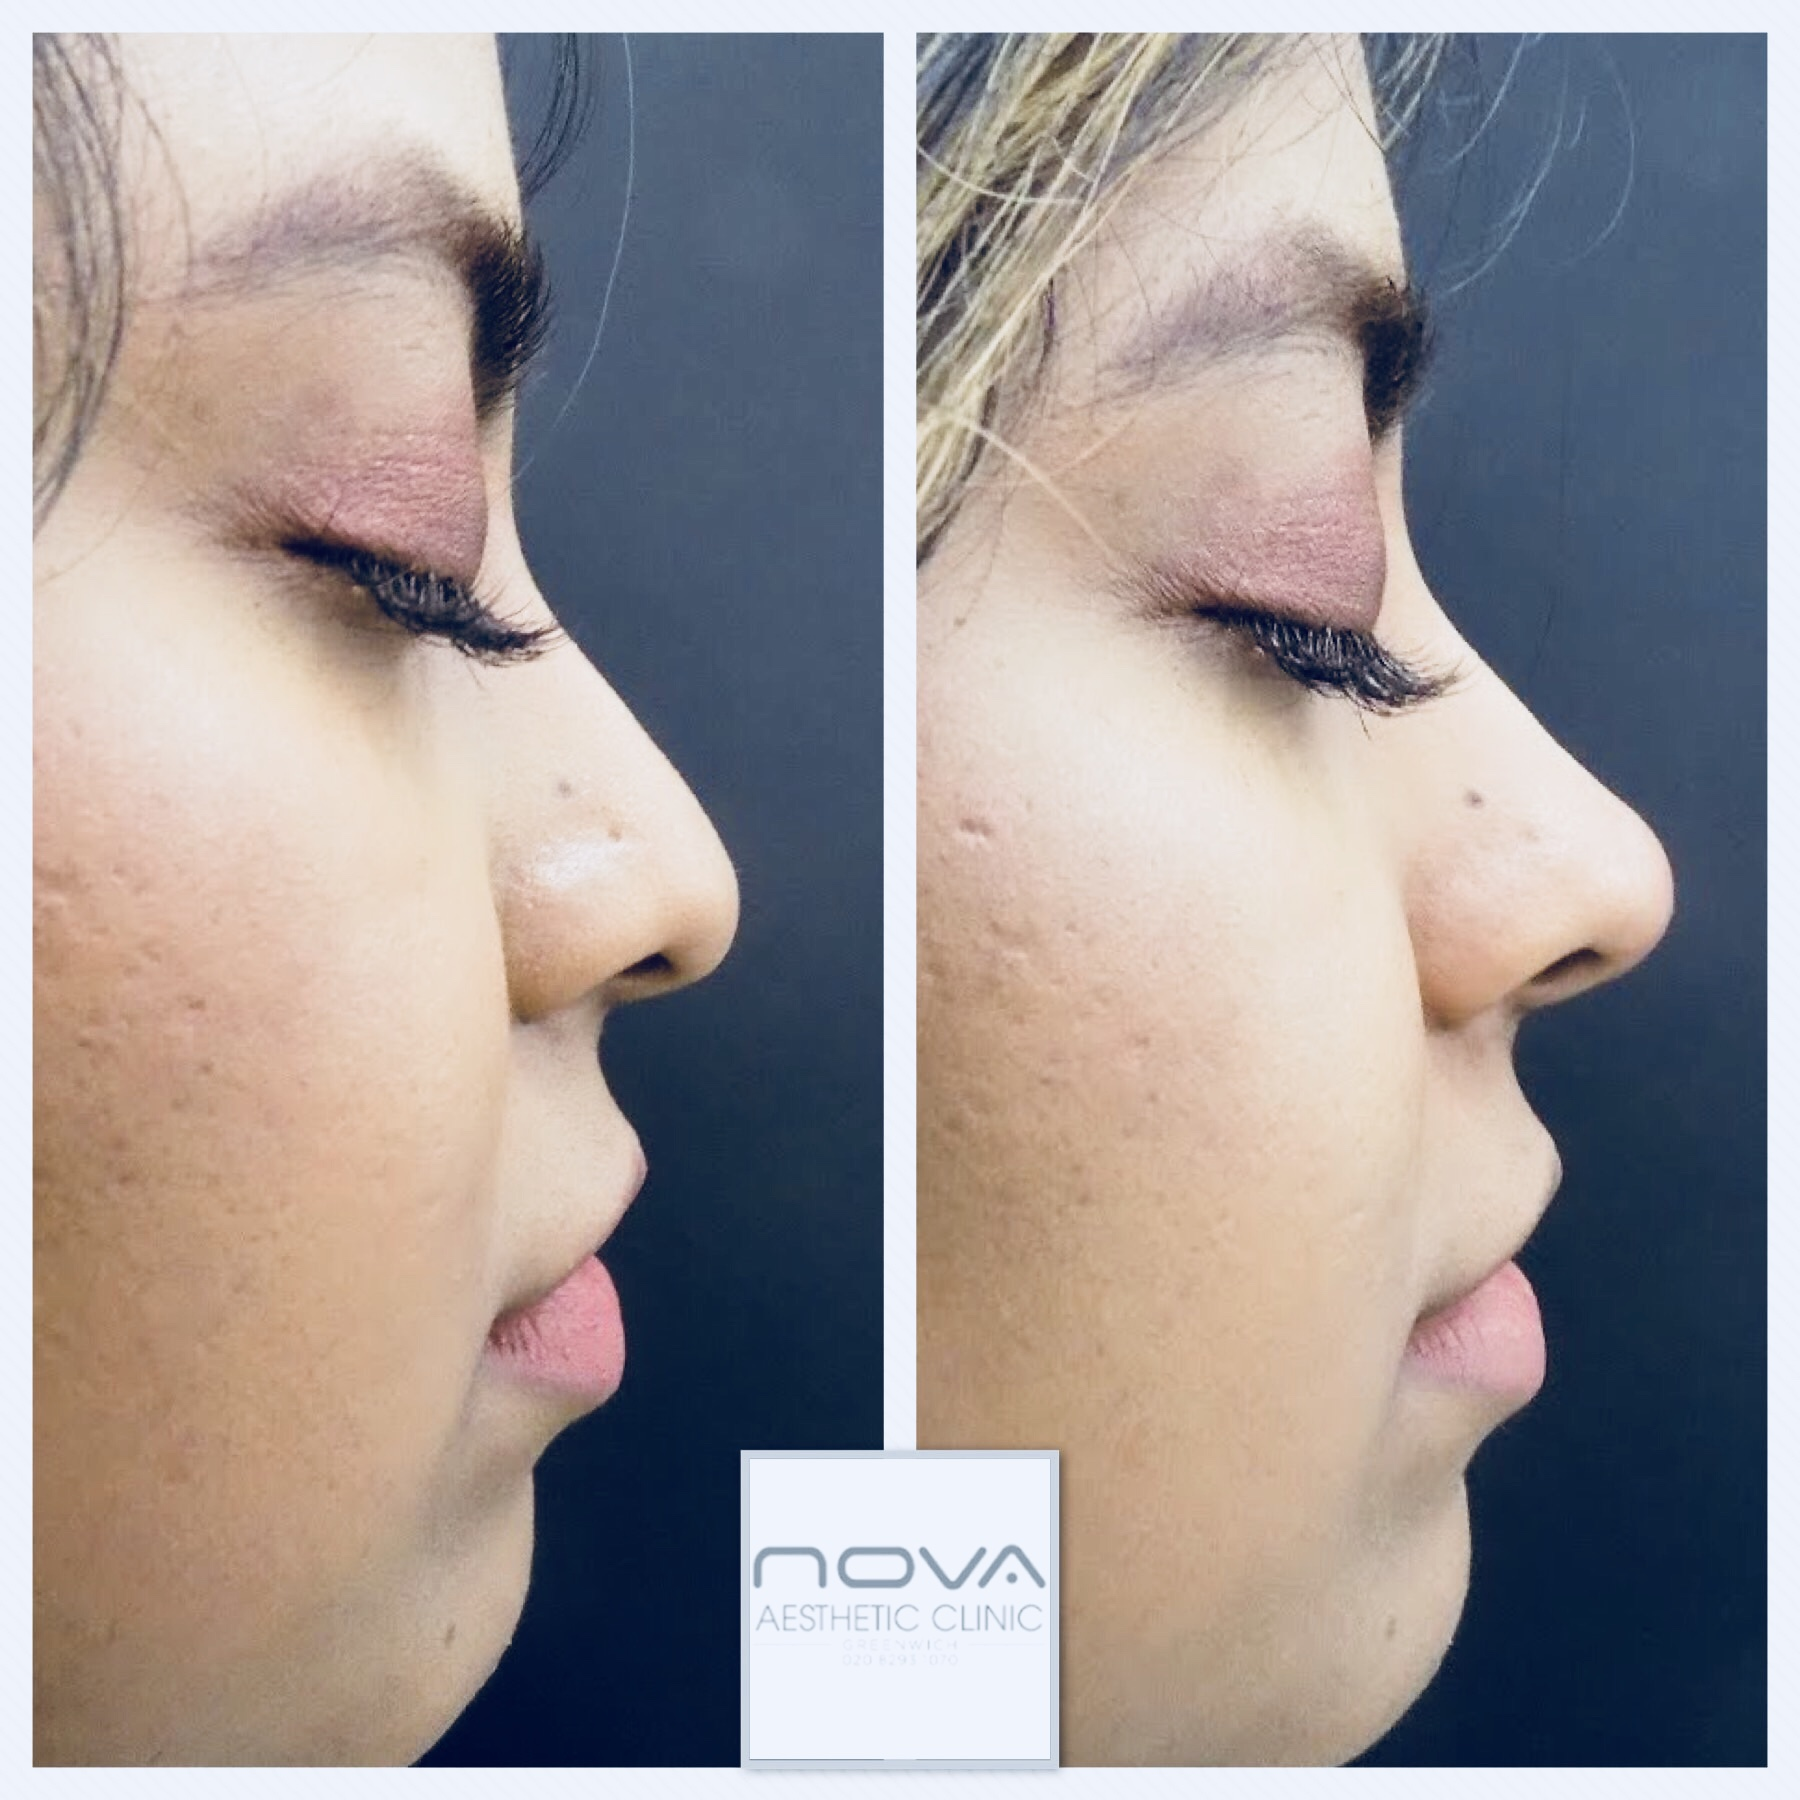 Nose Reshaping Fillers - Nova Clinic